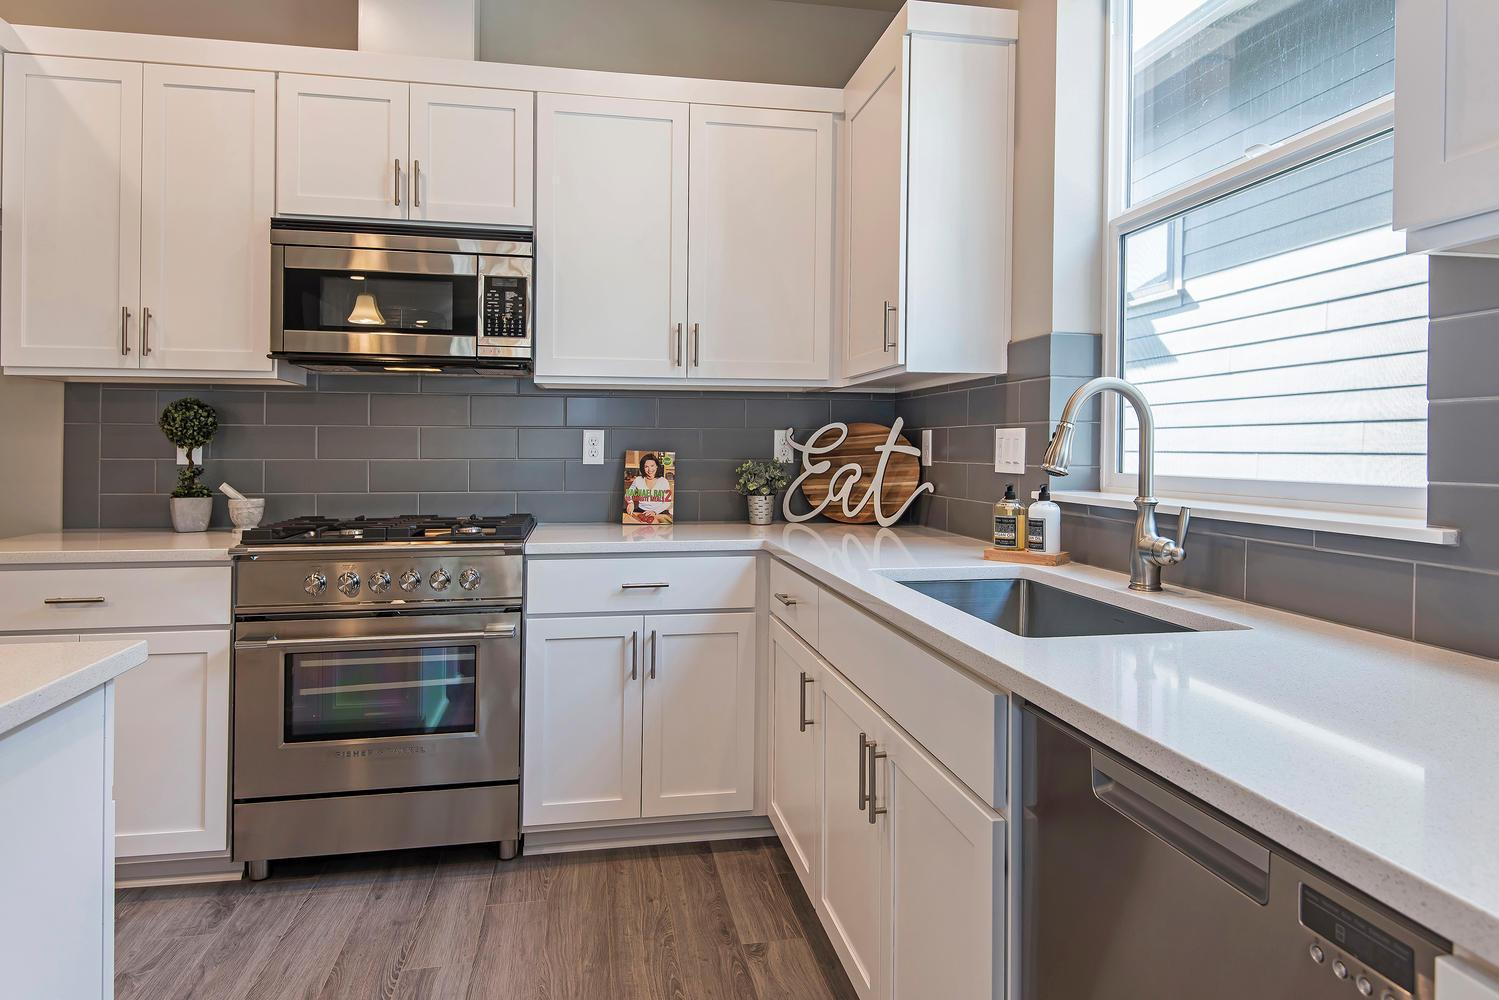 Kitchen featured in The Tamarack By Woodhill Homes in Central Oregon, OR